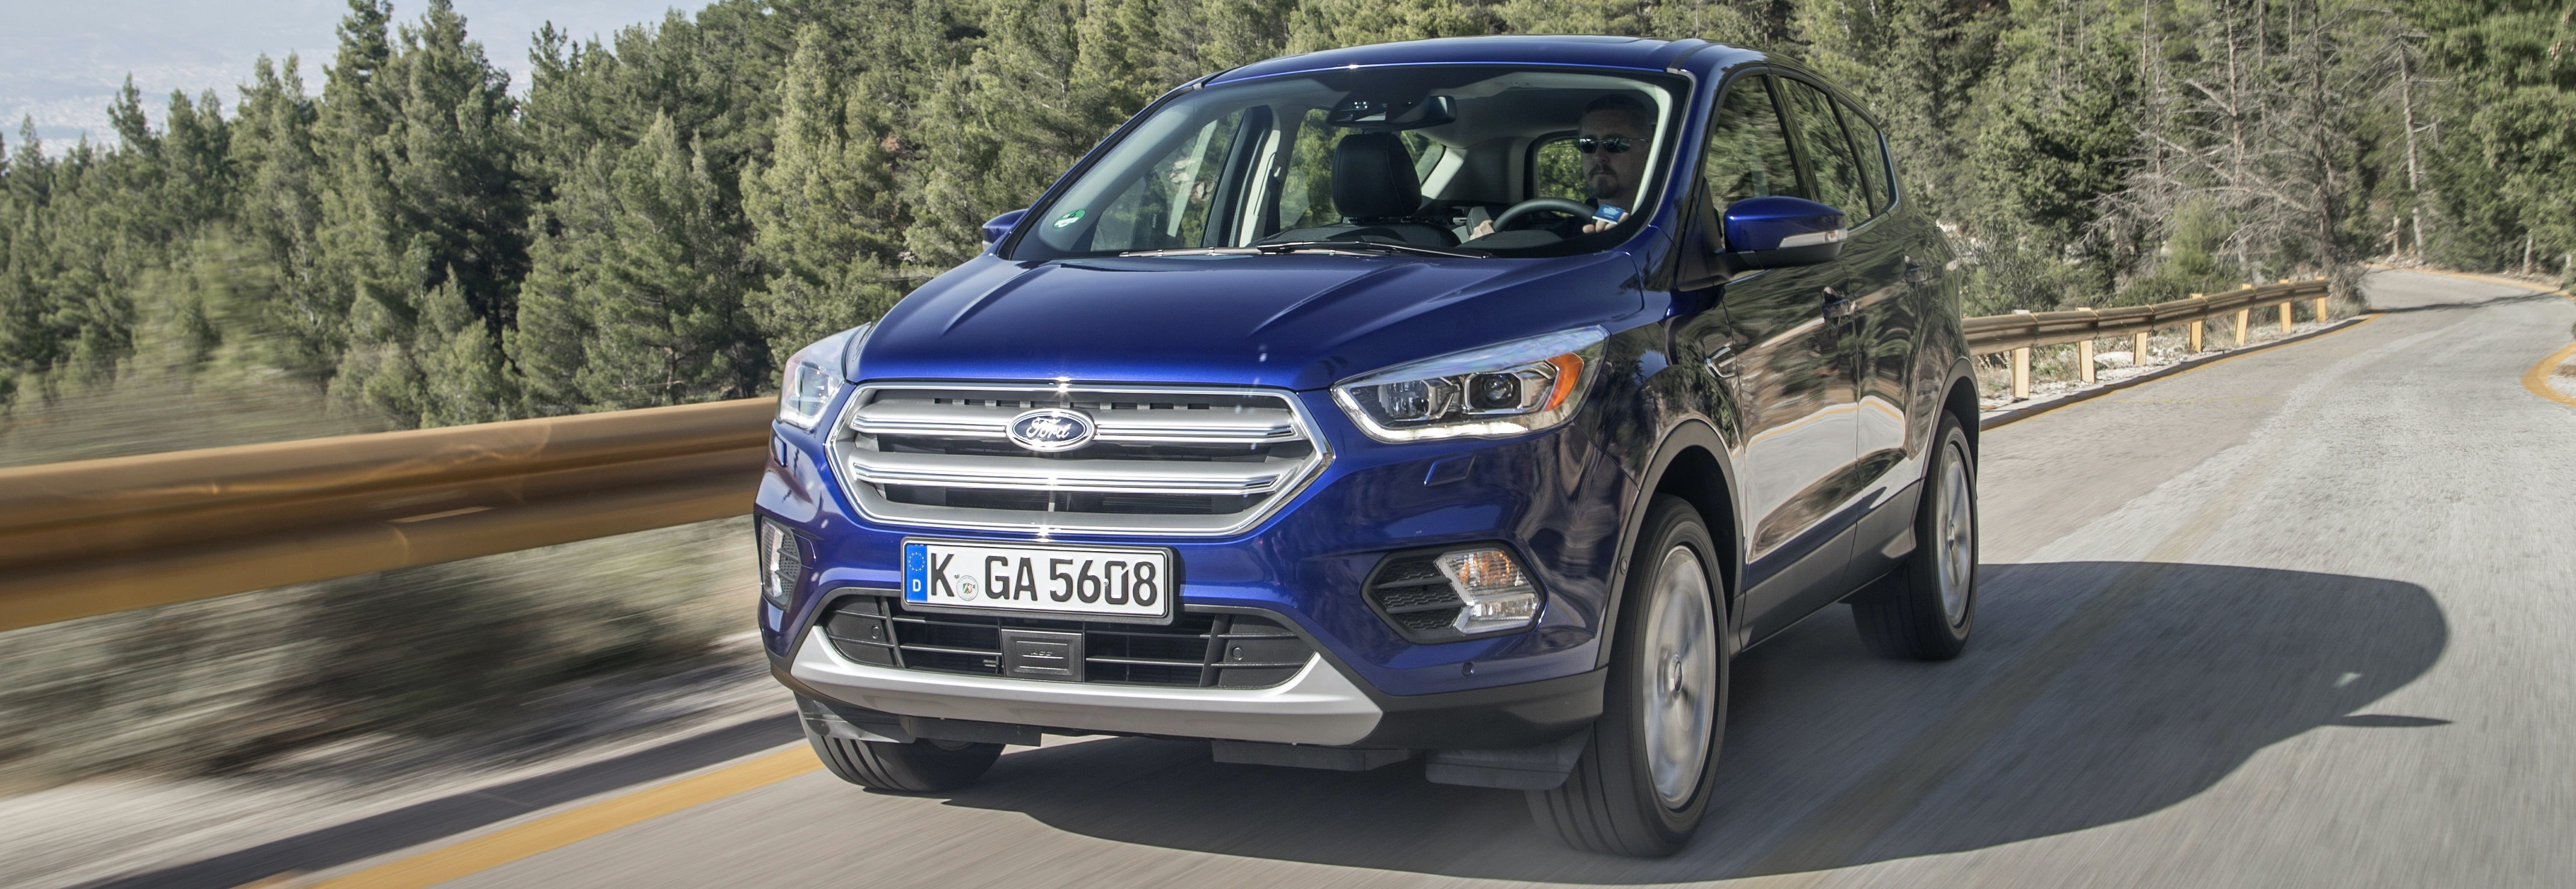 Ford Kuga 2017 vorne blau top10